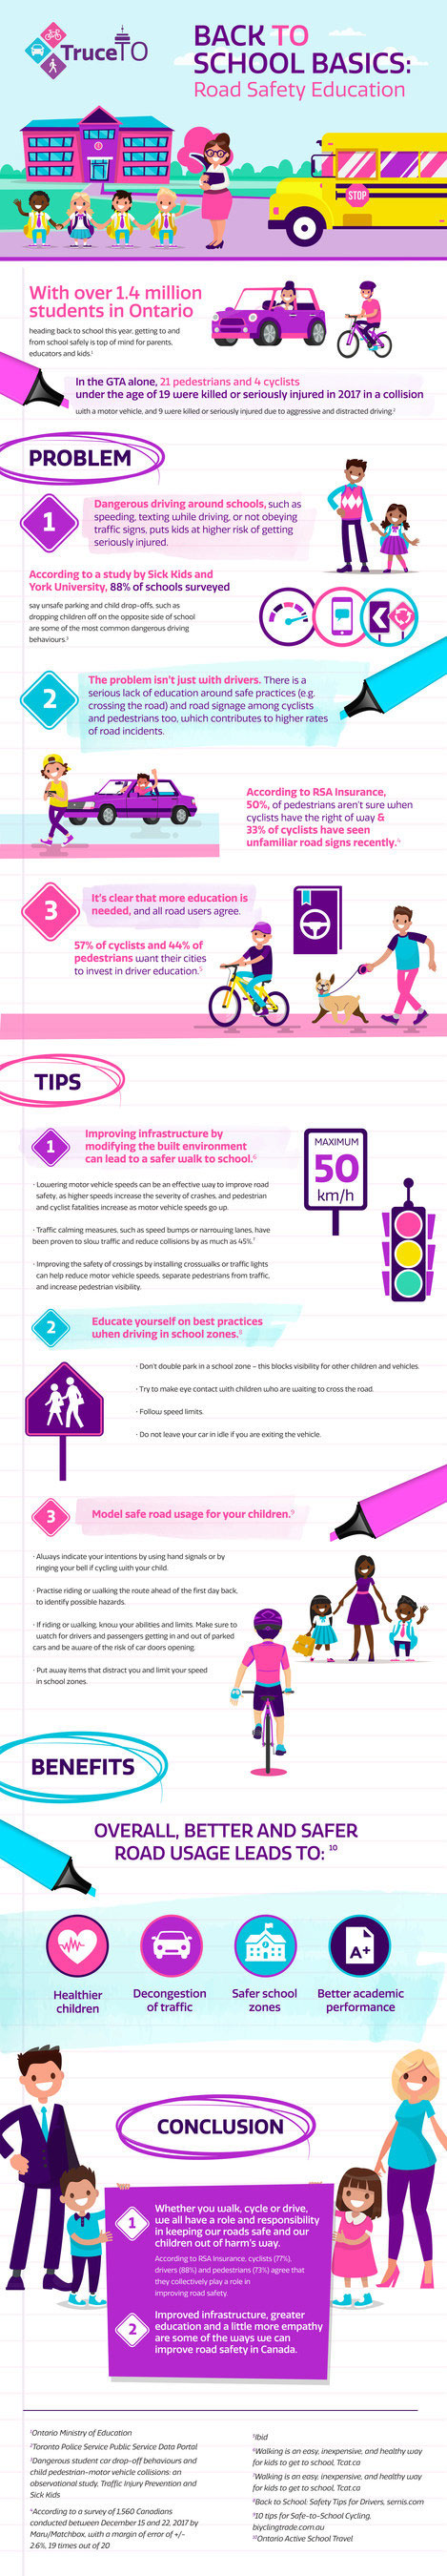 Canadian Back-to-School Road Safety Infographic